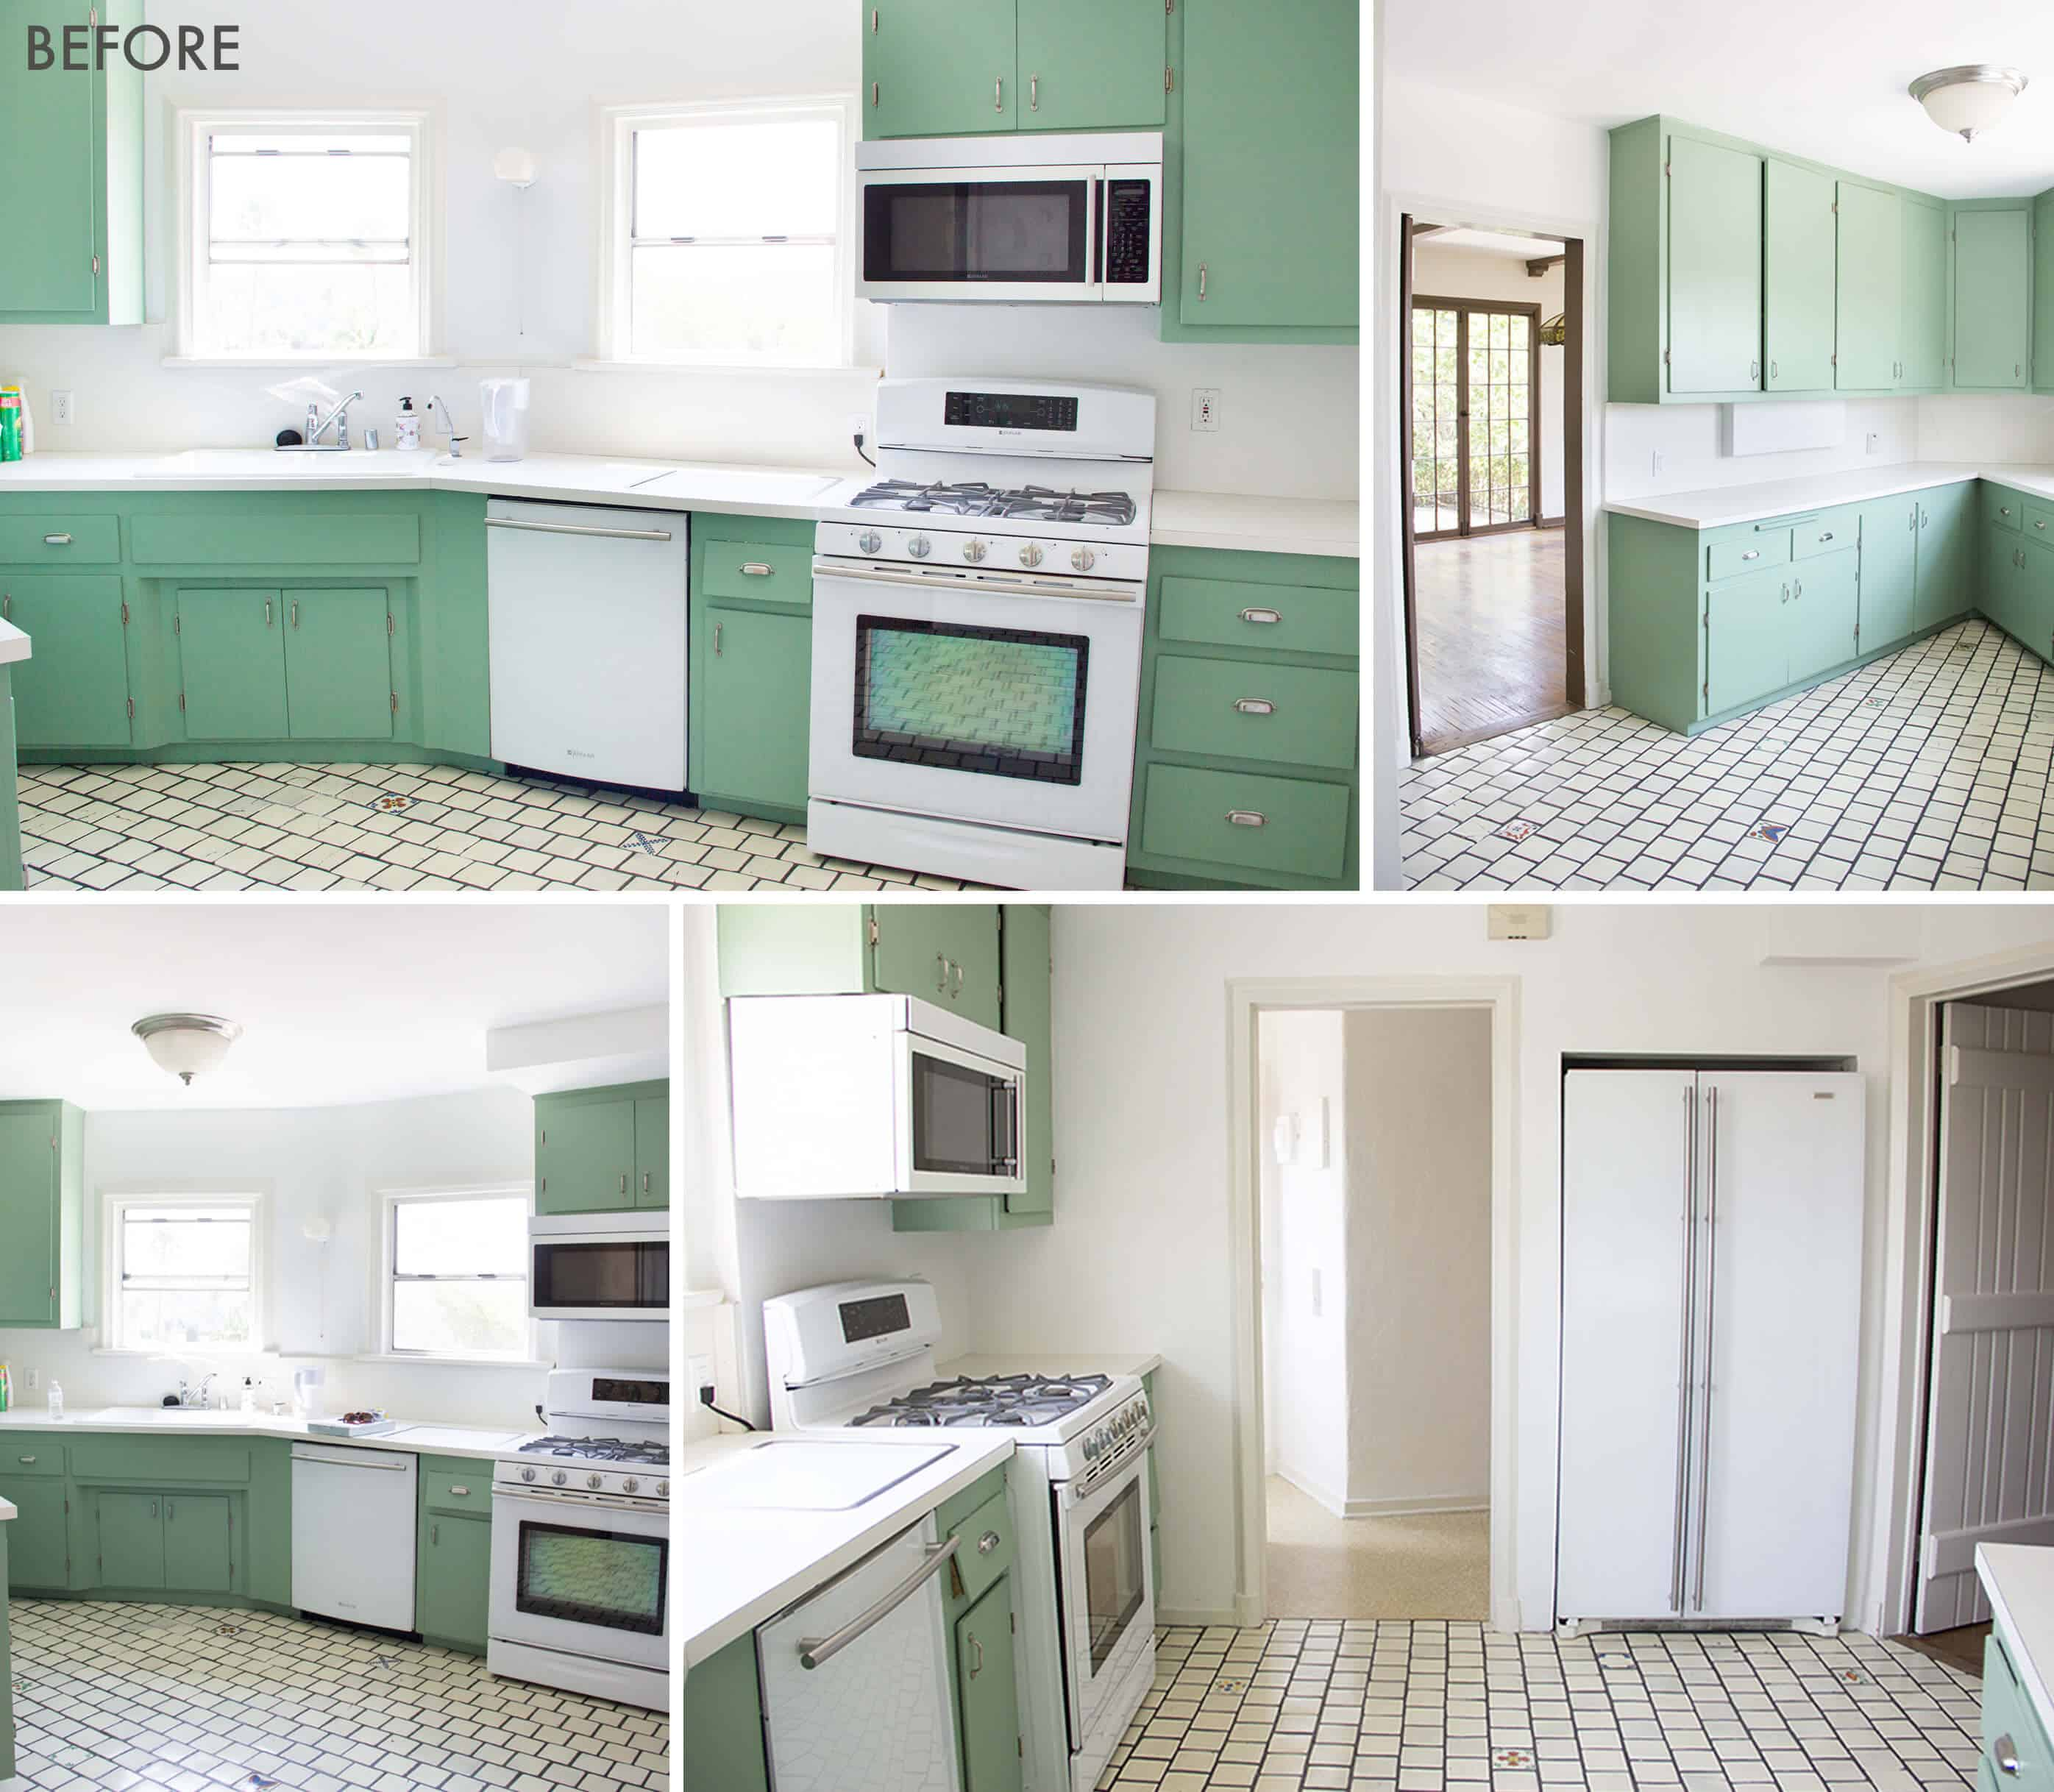 emily-henderson_waverly_before-photos_kitchen_frigidaire_collage_new